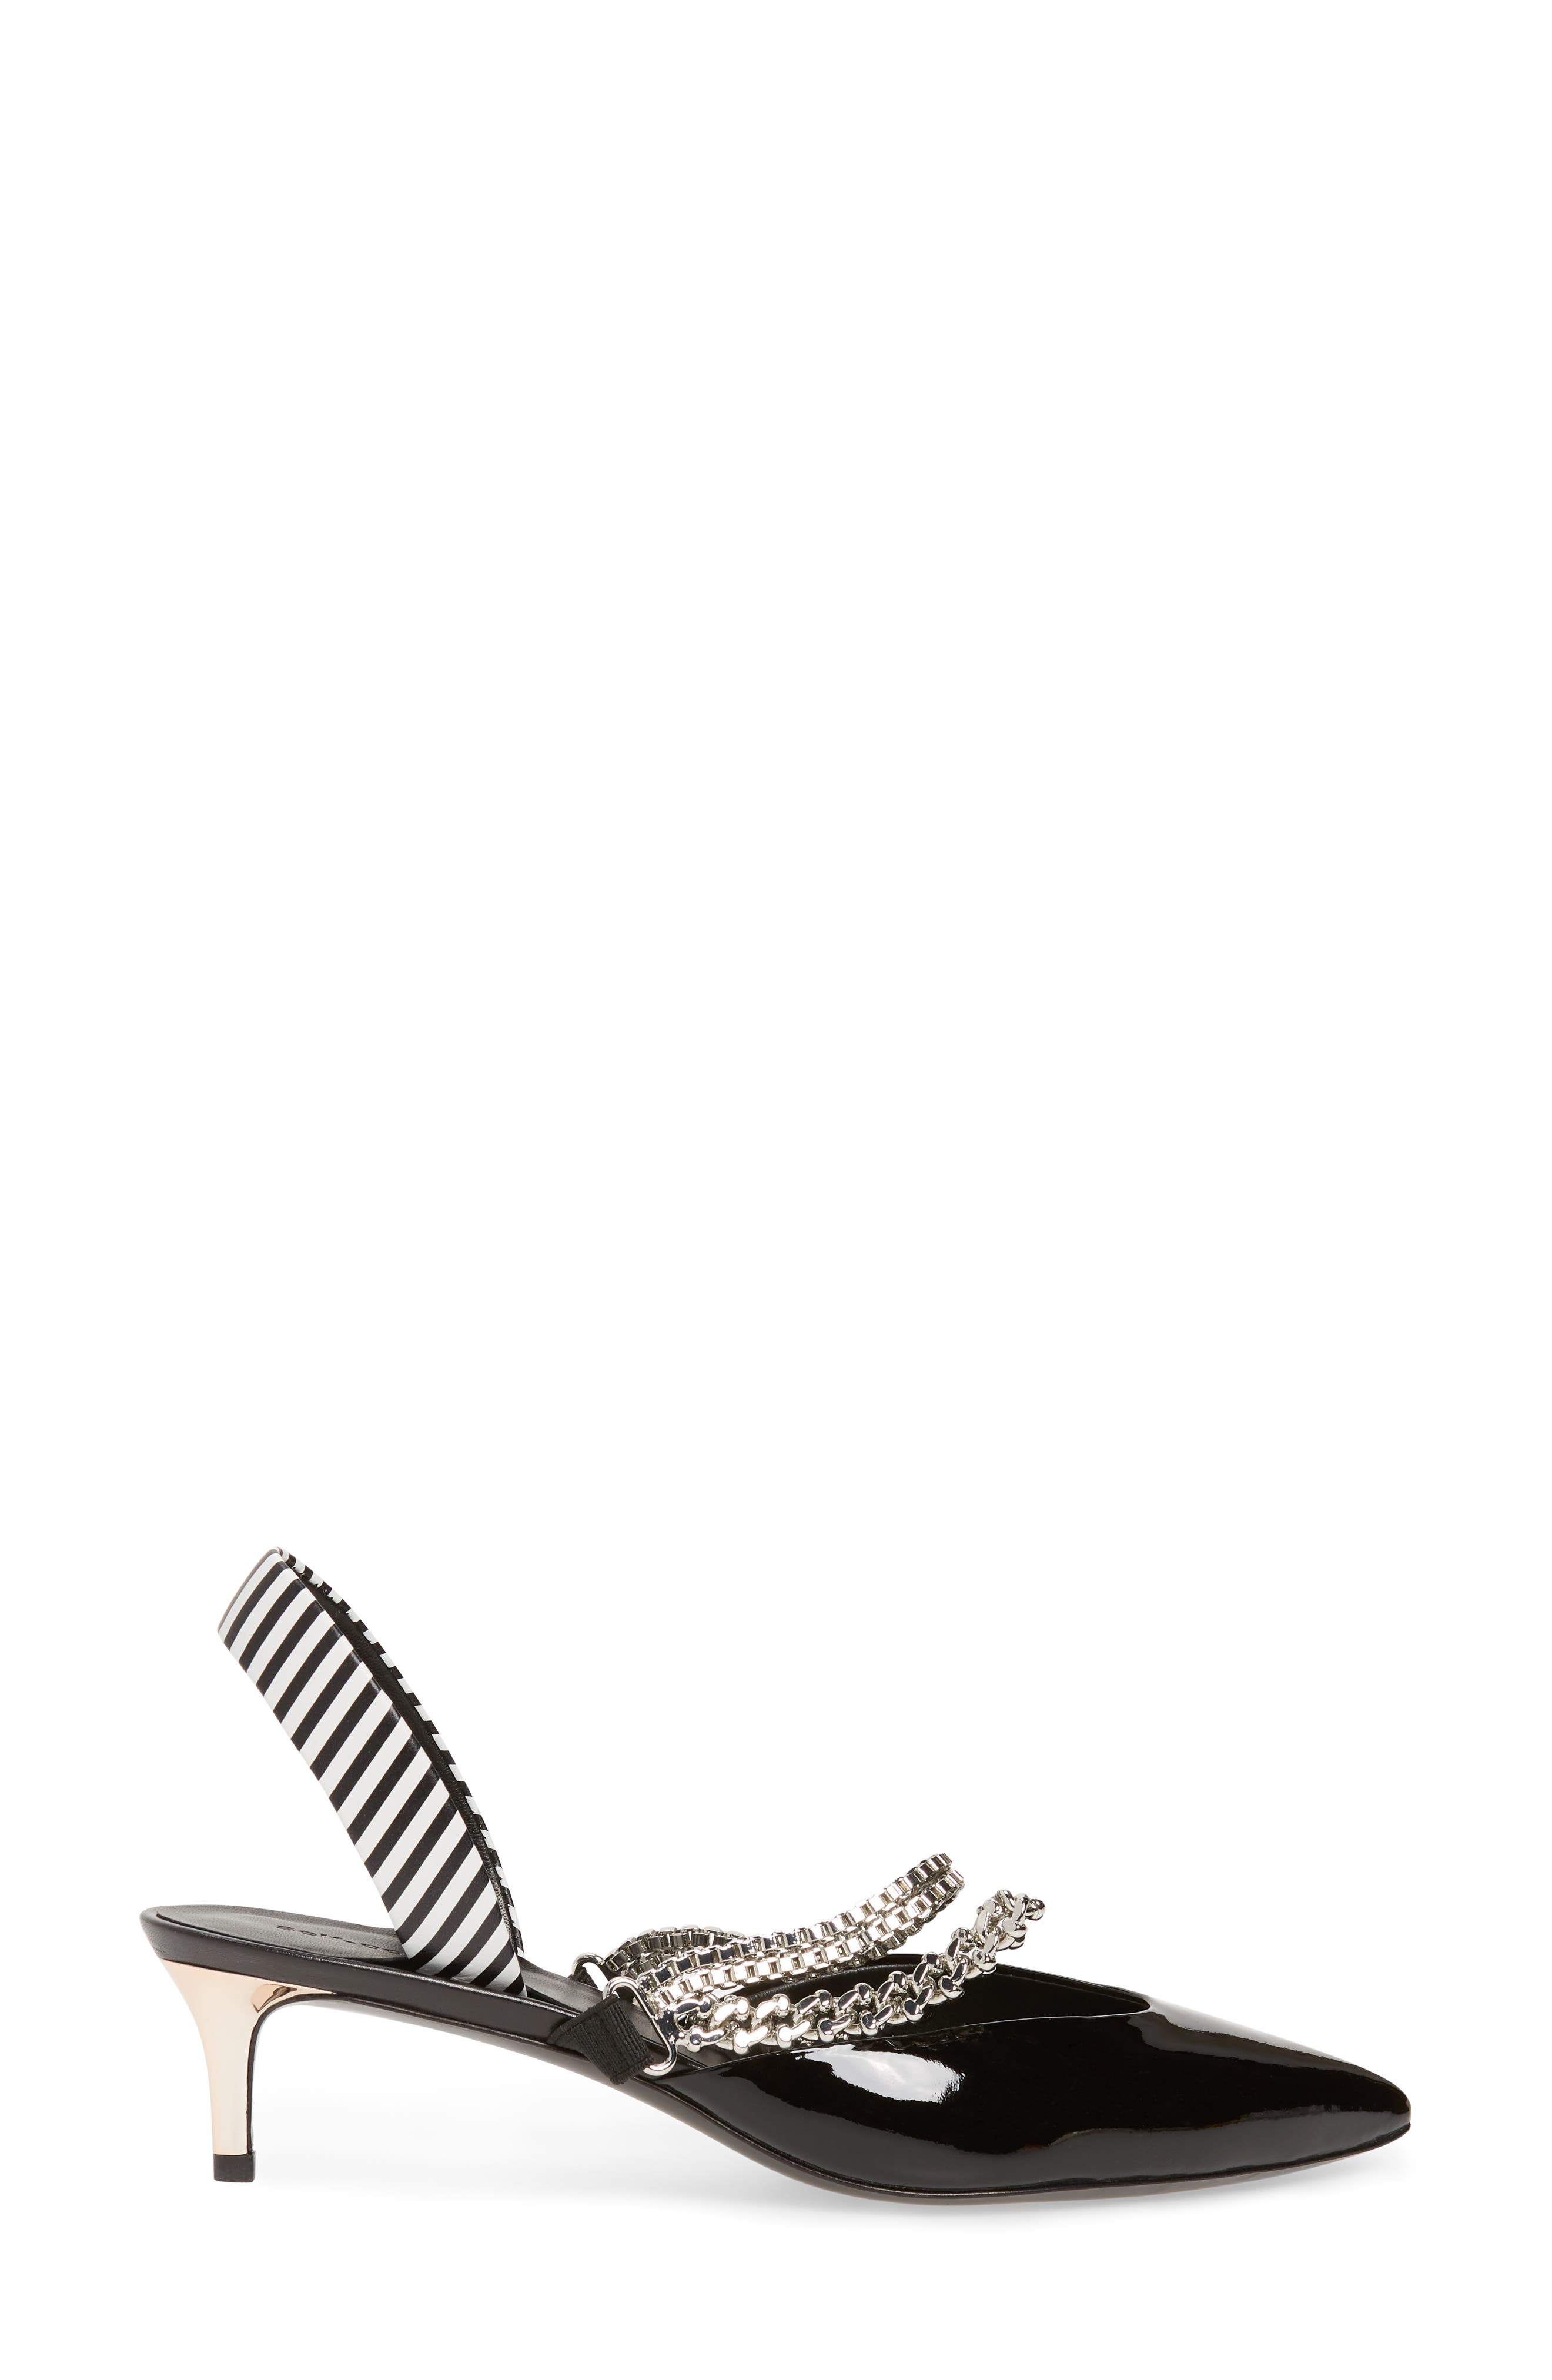 Kitty Chain Embellished Slingback Pump,                             Alternate thumbnail 3, color,                             001